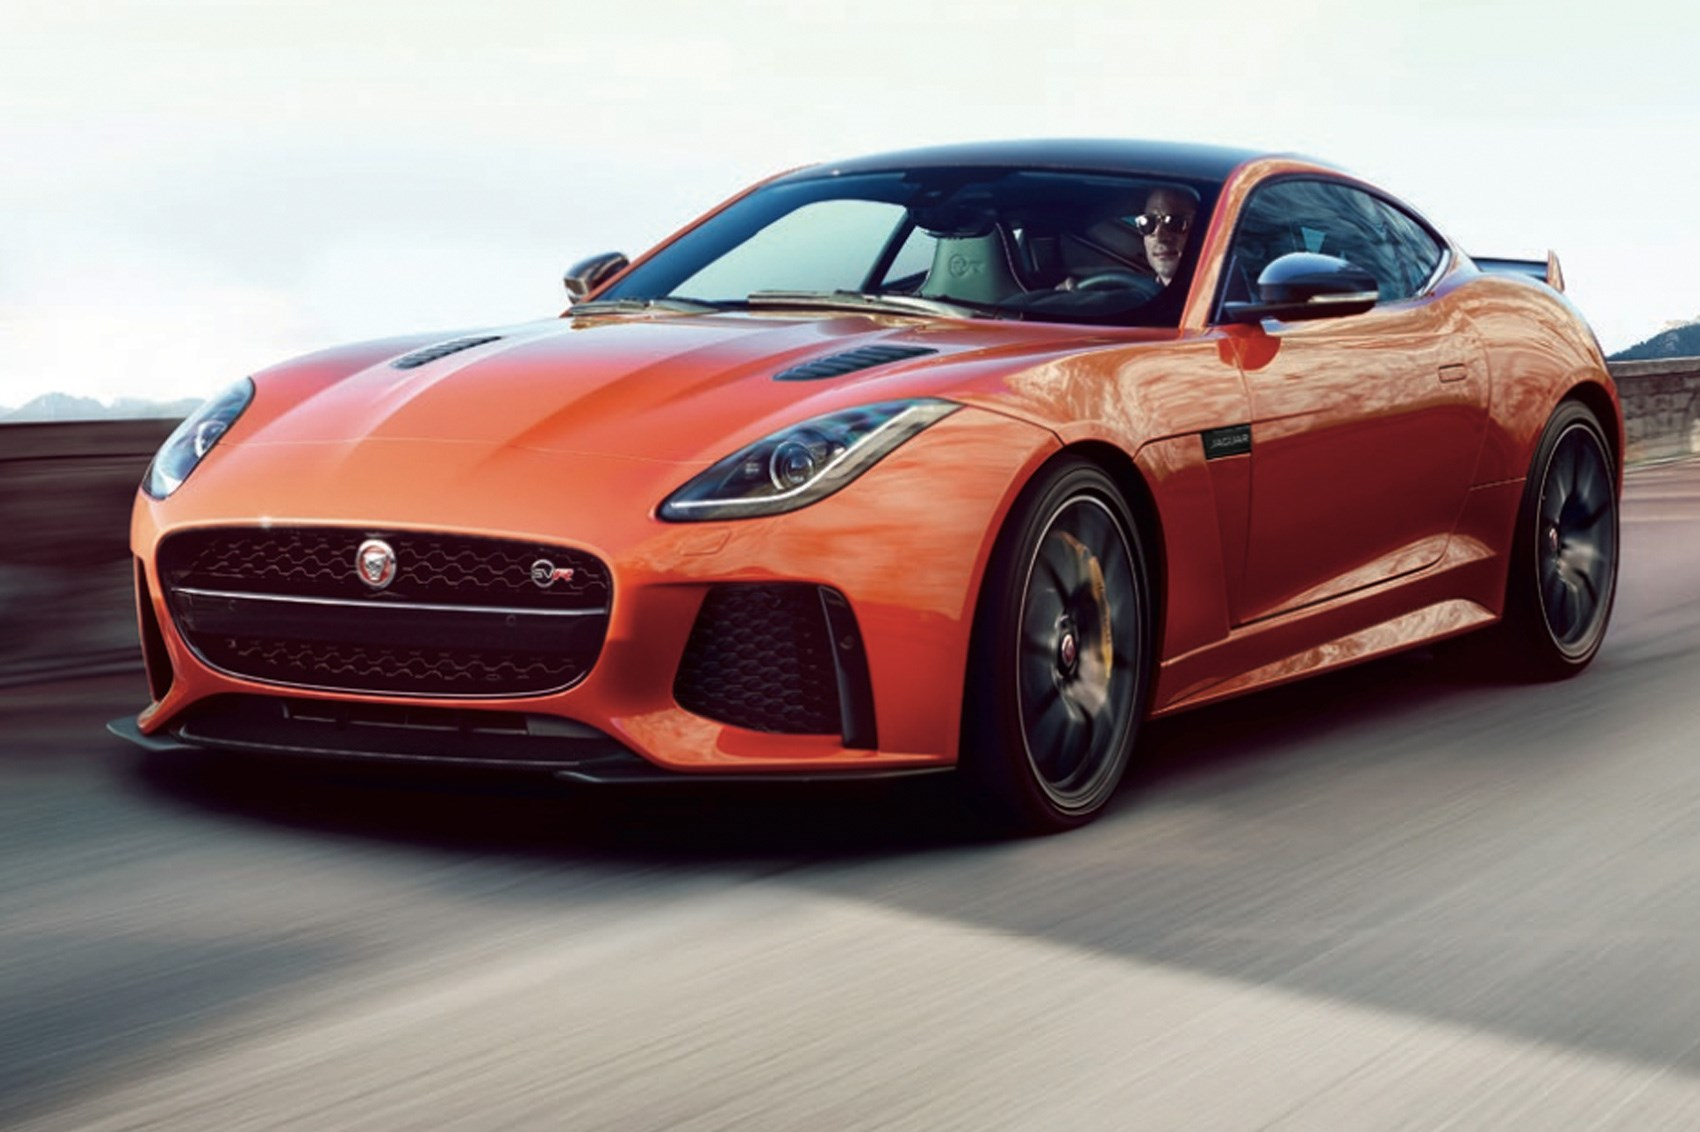 More Info On Jaguar F Type